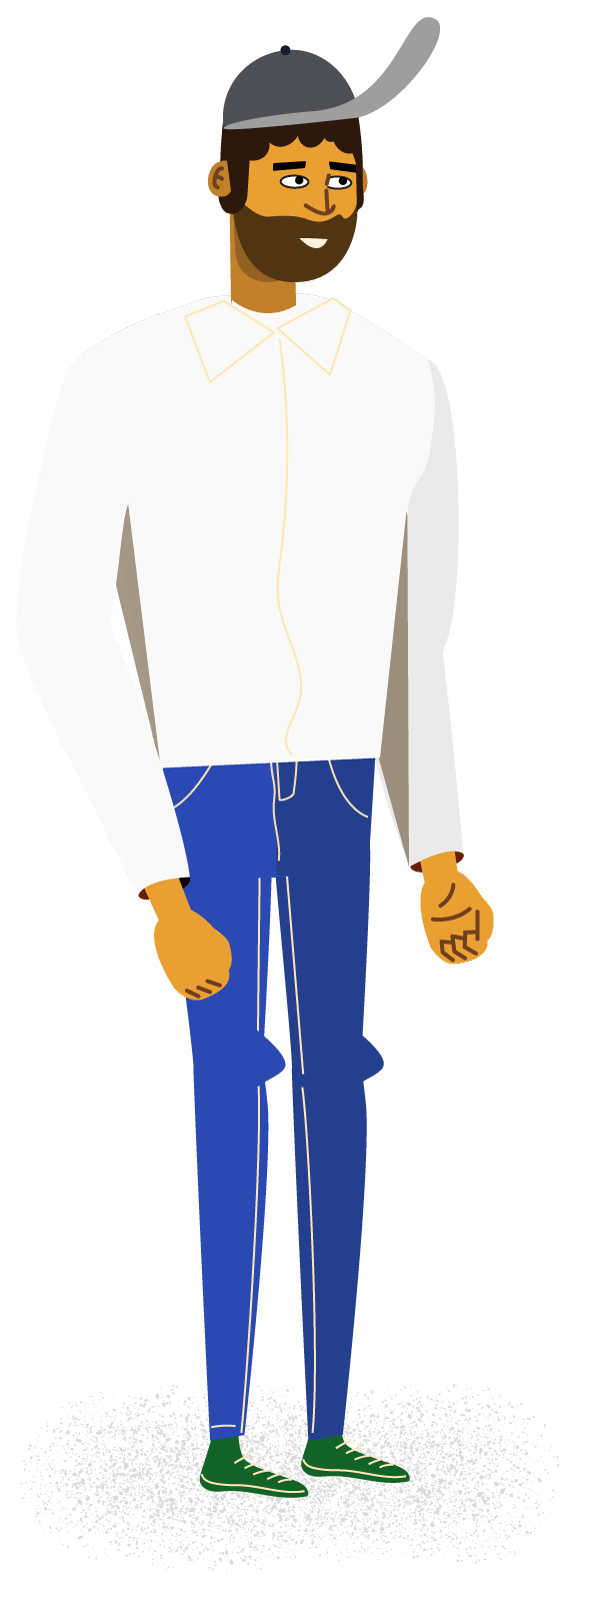 Illustration of a man in a baseball cap